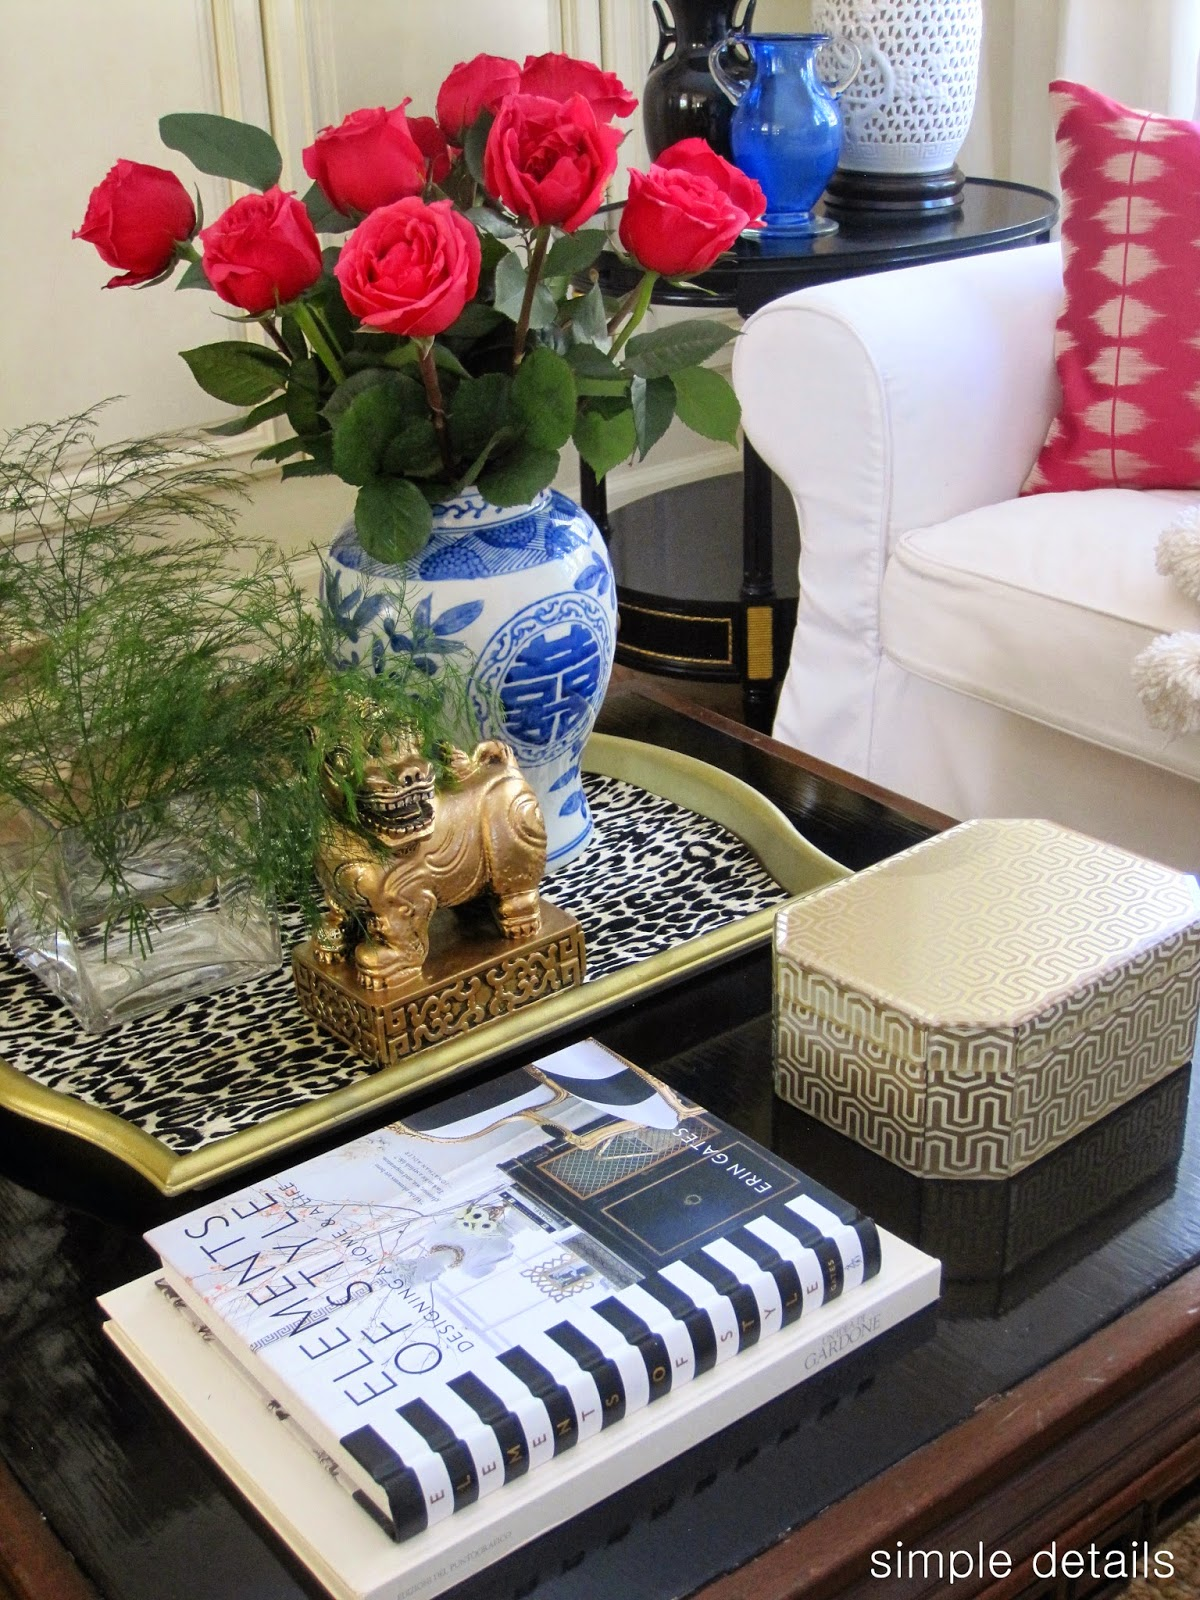 Simple details coffee table reveal and styling tips bit of quirk the greenery in the clear square vase is the fern filler that came with the roses i used the same on the first coffee table too geotapseo Choice Image